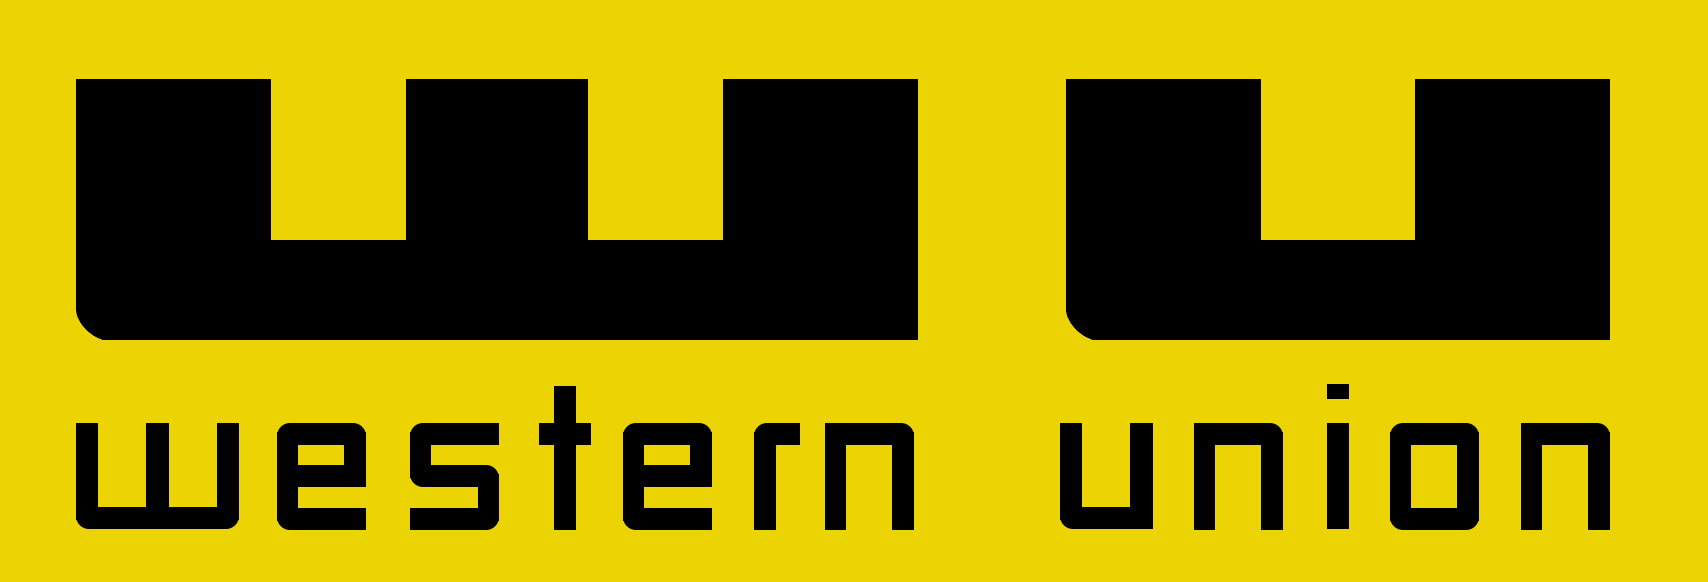 Western union old 1969